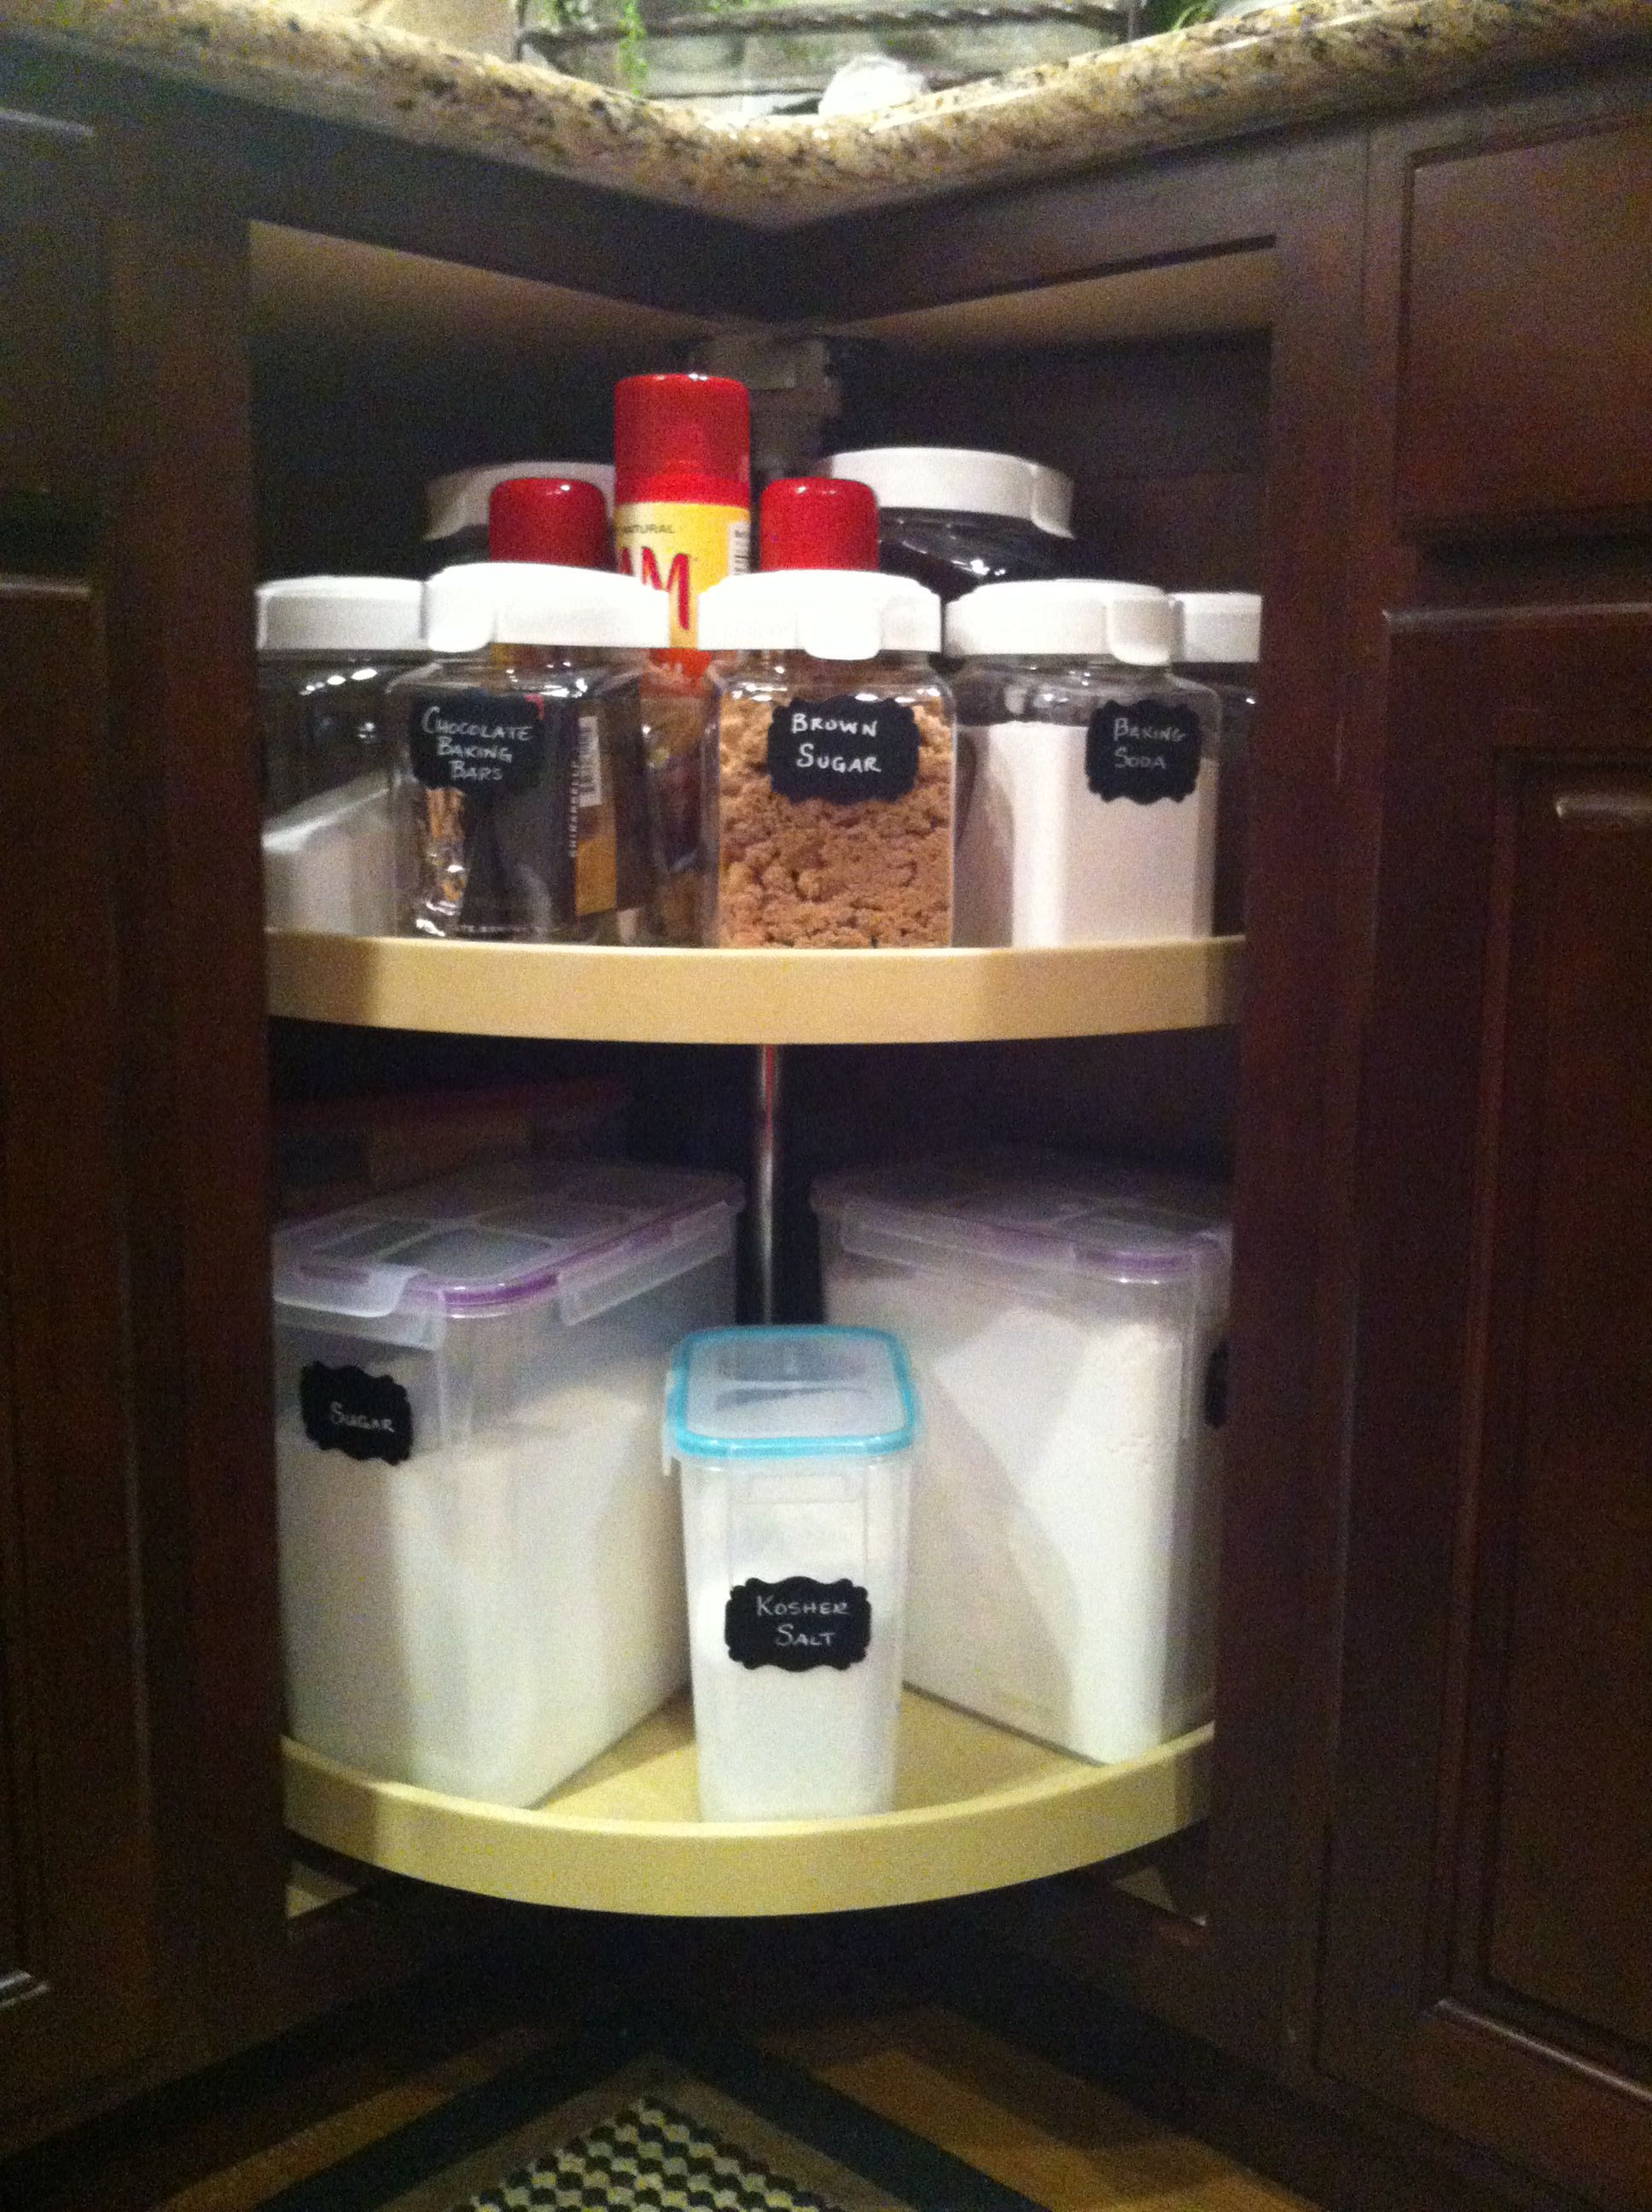 Lazy Susan Organized Using Ideas From Pinterest Kitchen Cabinet Organization Cabinet Organization Diy Diy Kitchen Cabinets